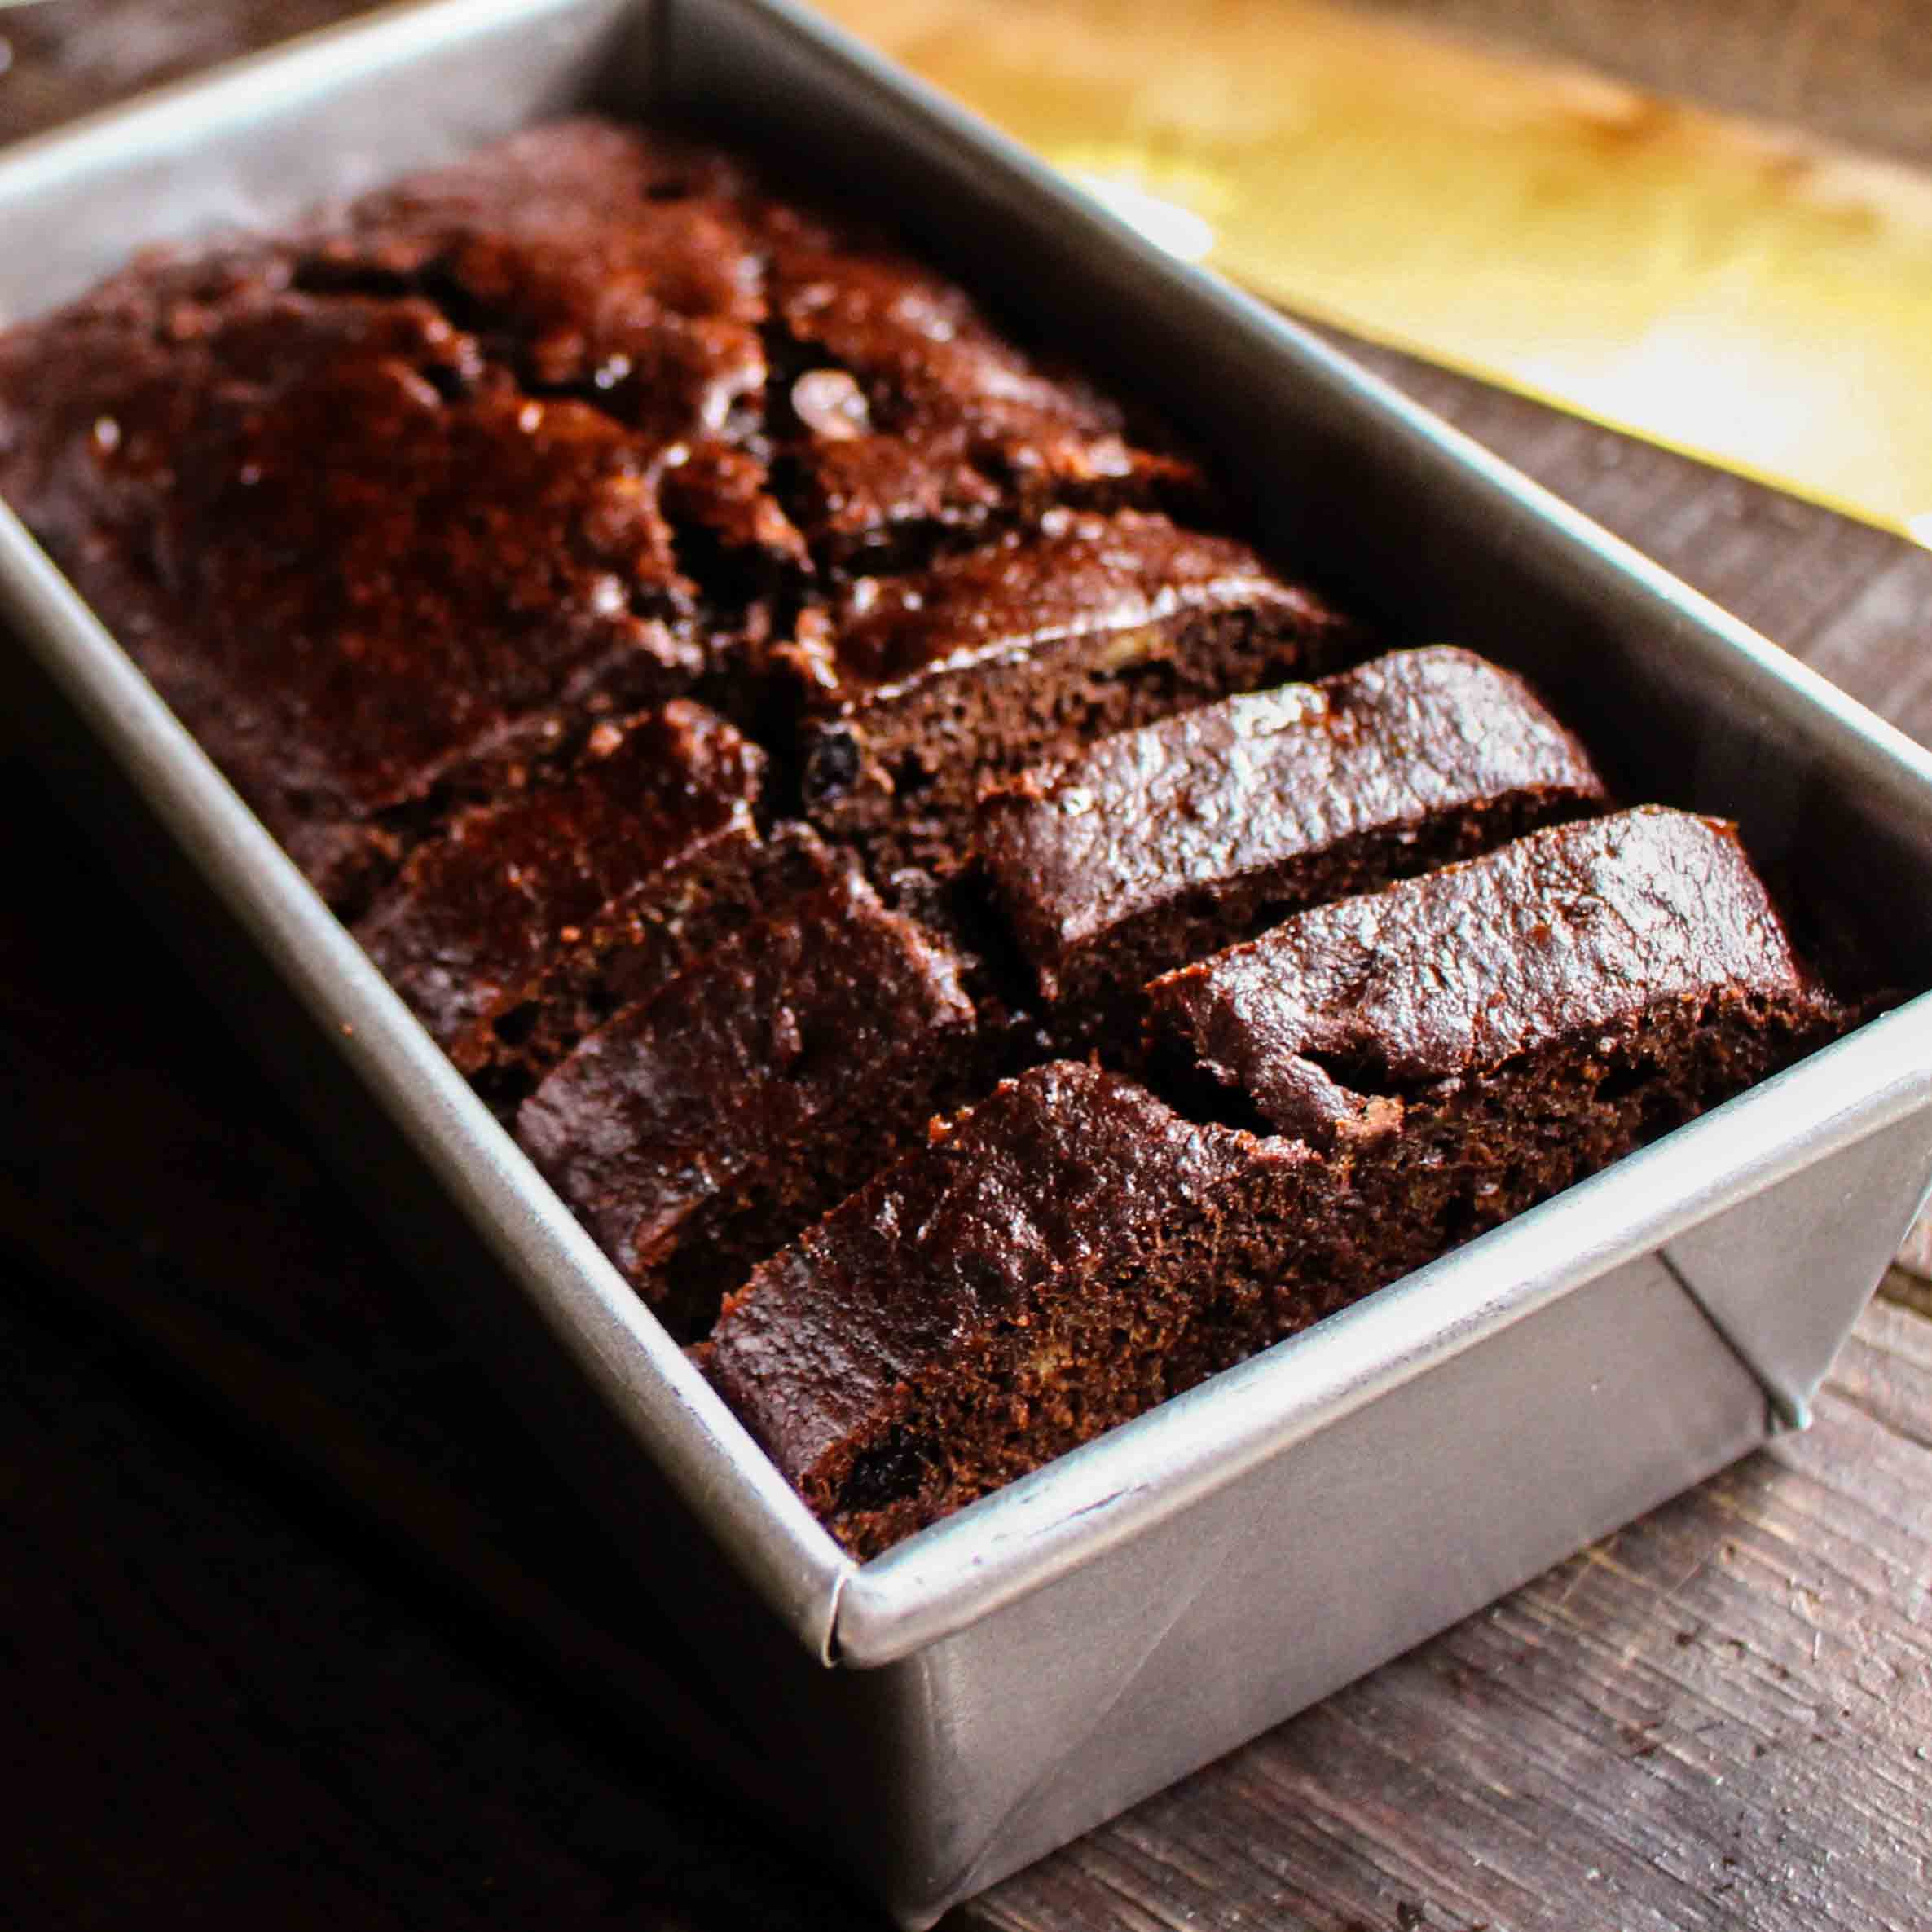 <p>Although it's vegan, this cake delivers a rich mocha-chocolate flavor thanks to Dutch-process cocoa and Dried Plum Puree.</p>